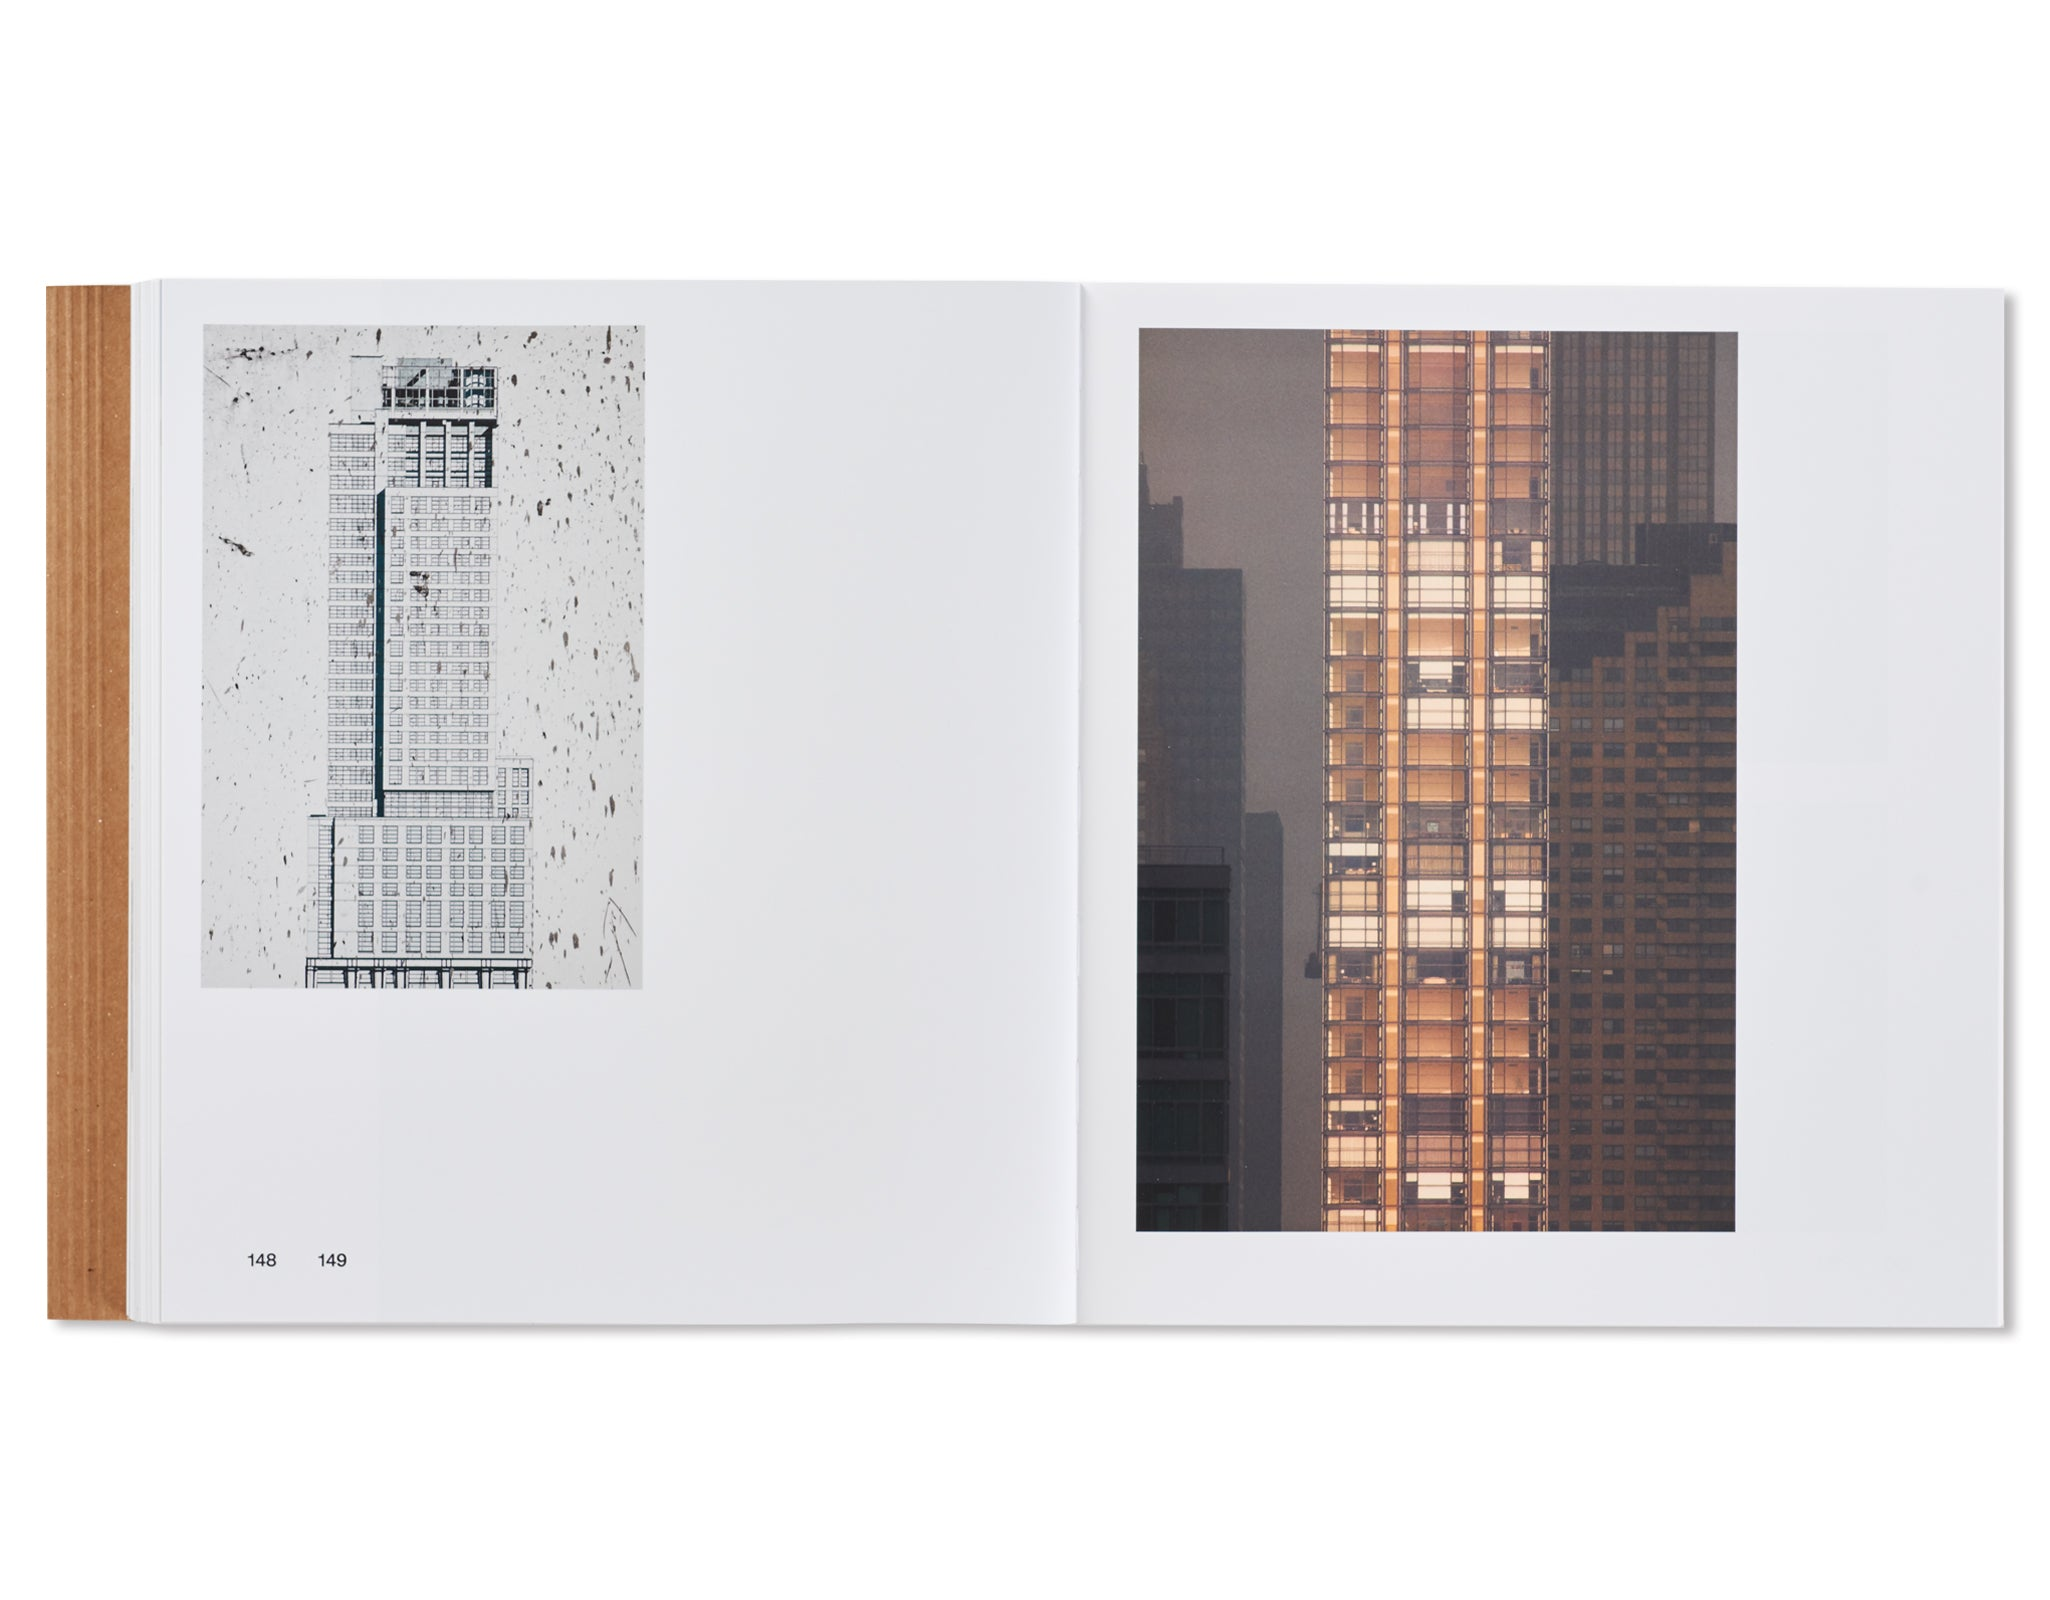 43–35 10TH STREET by Daniel Shea [SIGNED]